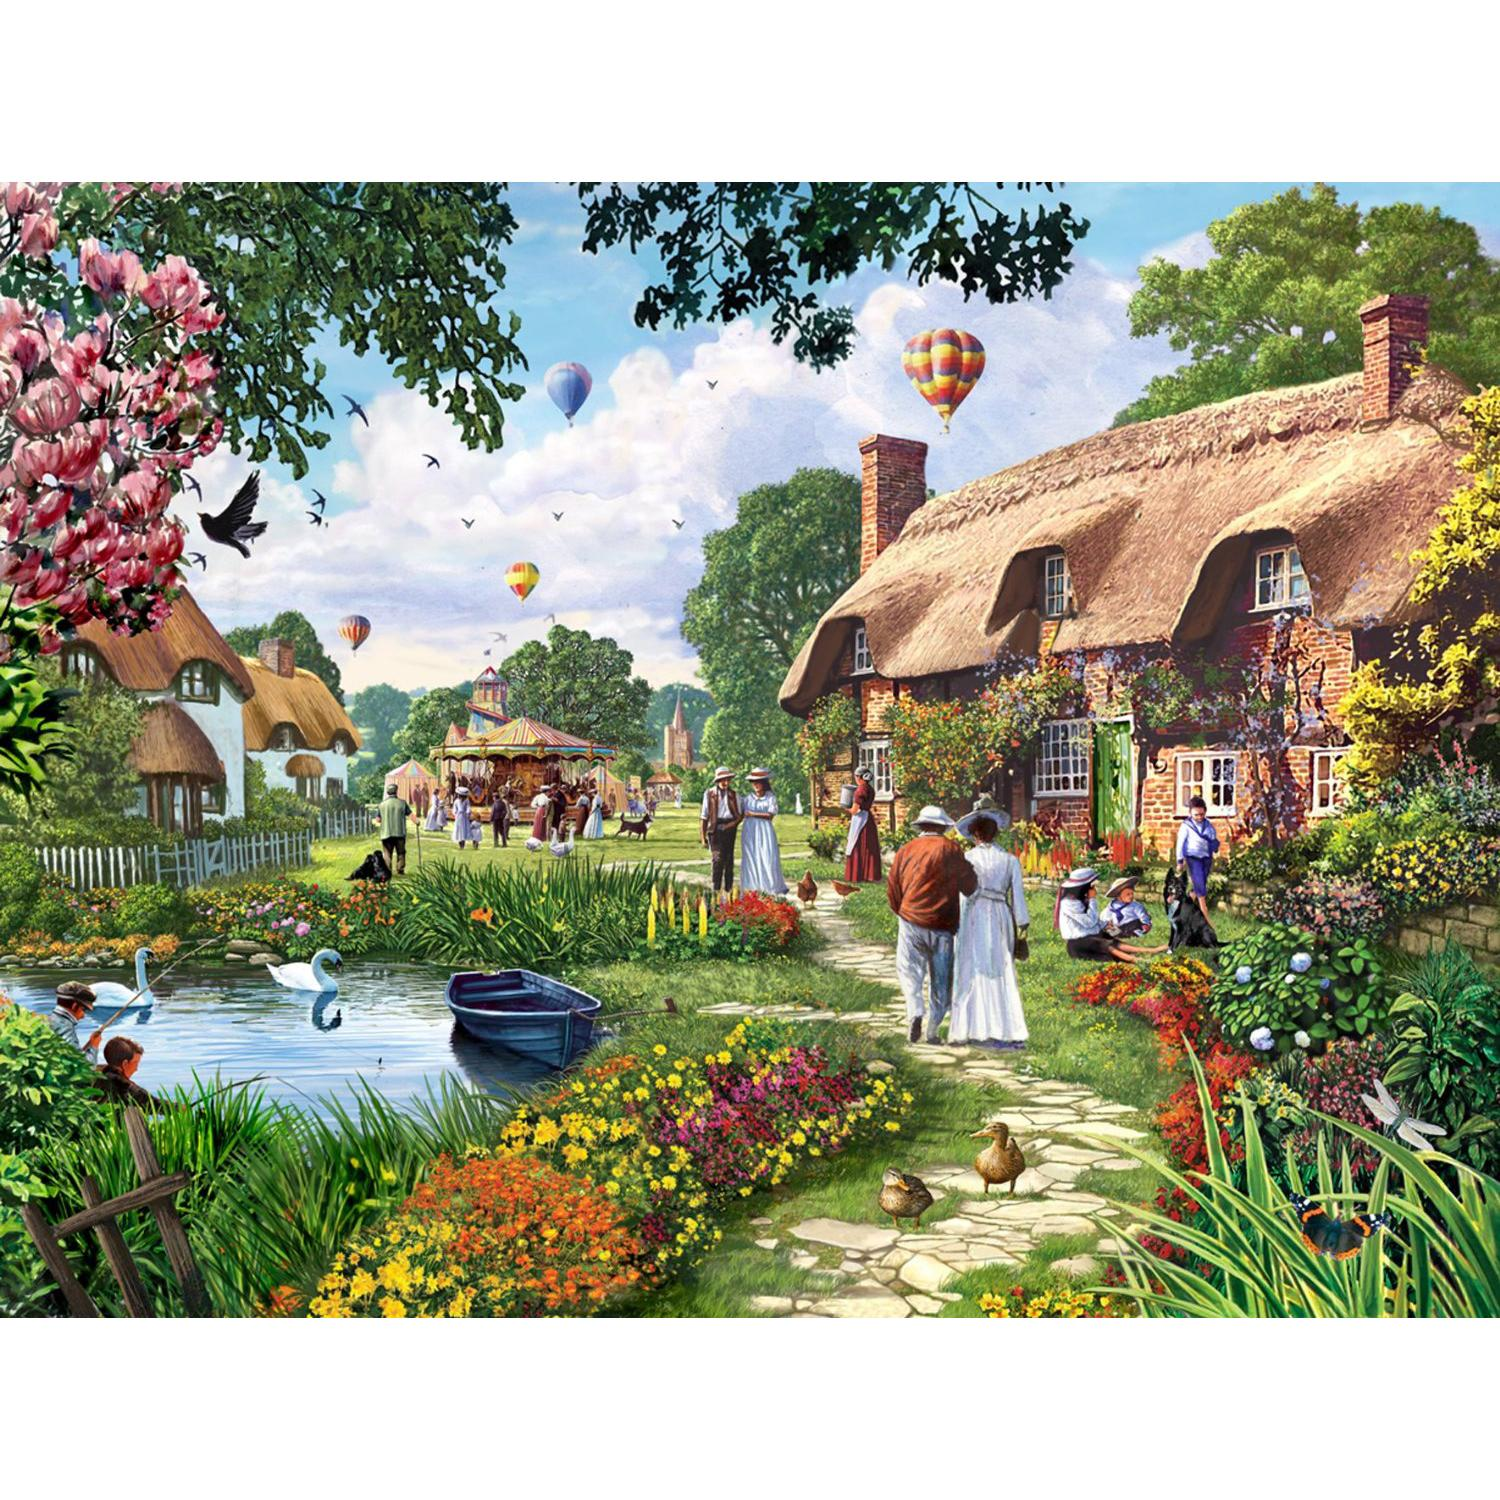 Adult Jig Saw Puzzles 116